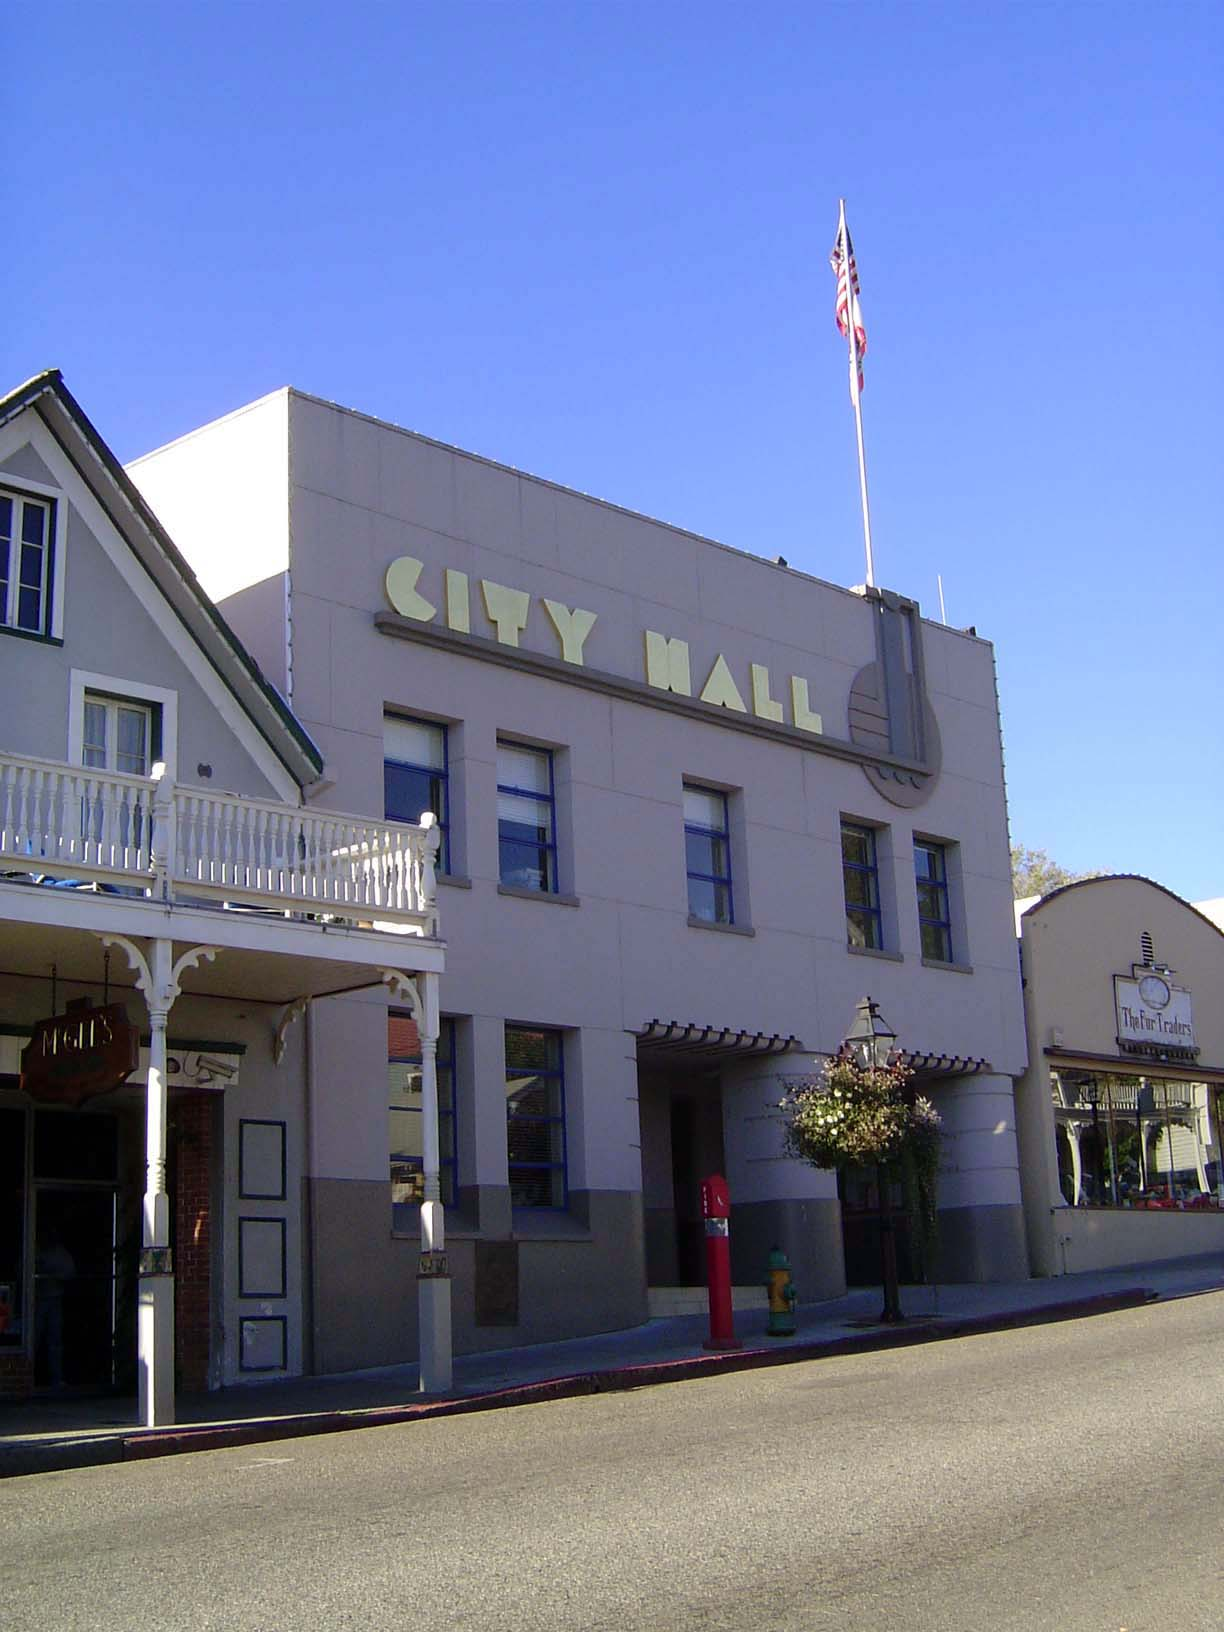 The Western United States: Grass Valley, Nevada City, and Downieville